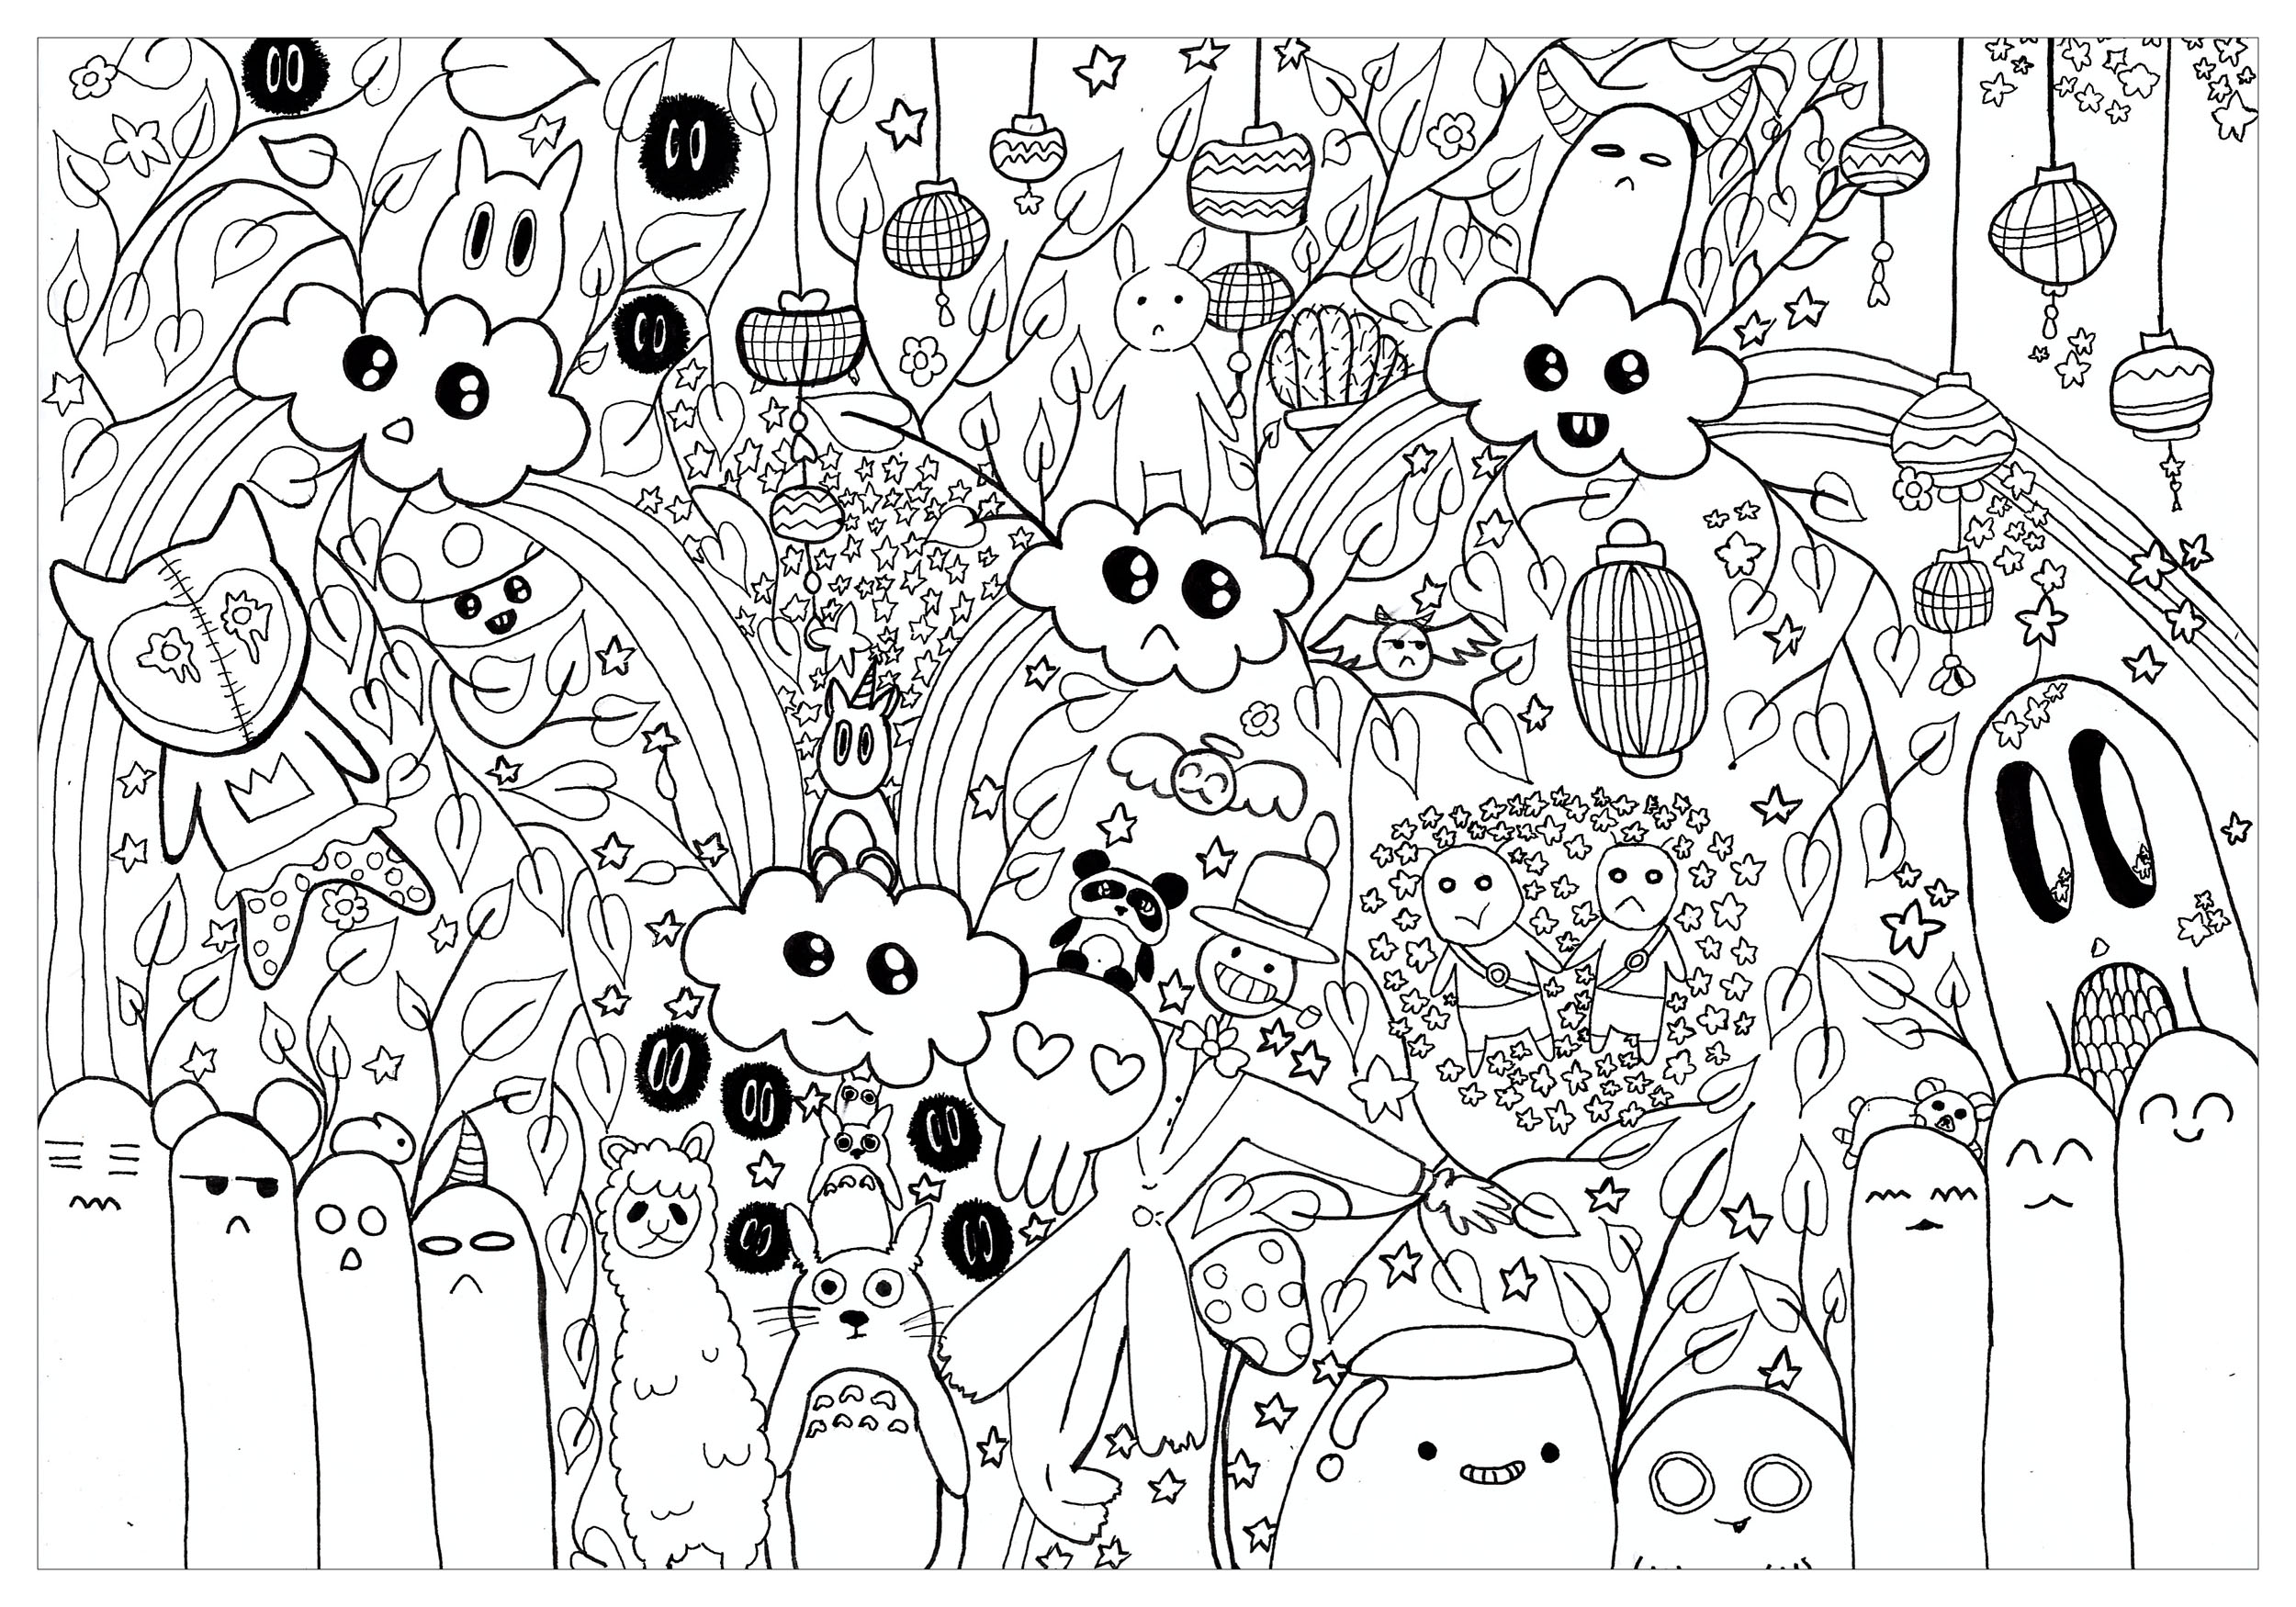 Doodle totoro doodles coloriages difficiles pour adultes - Coloriage art ...